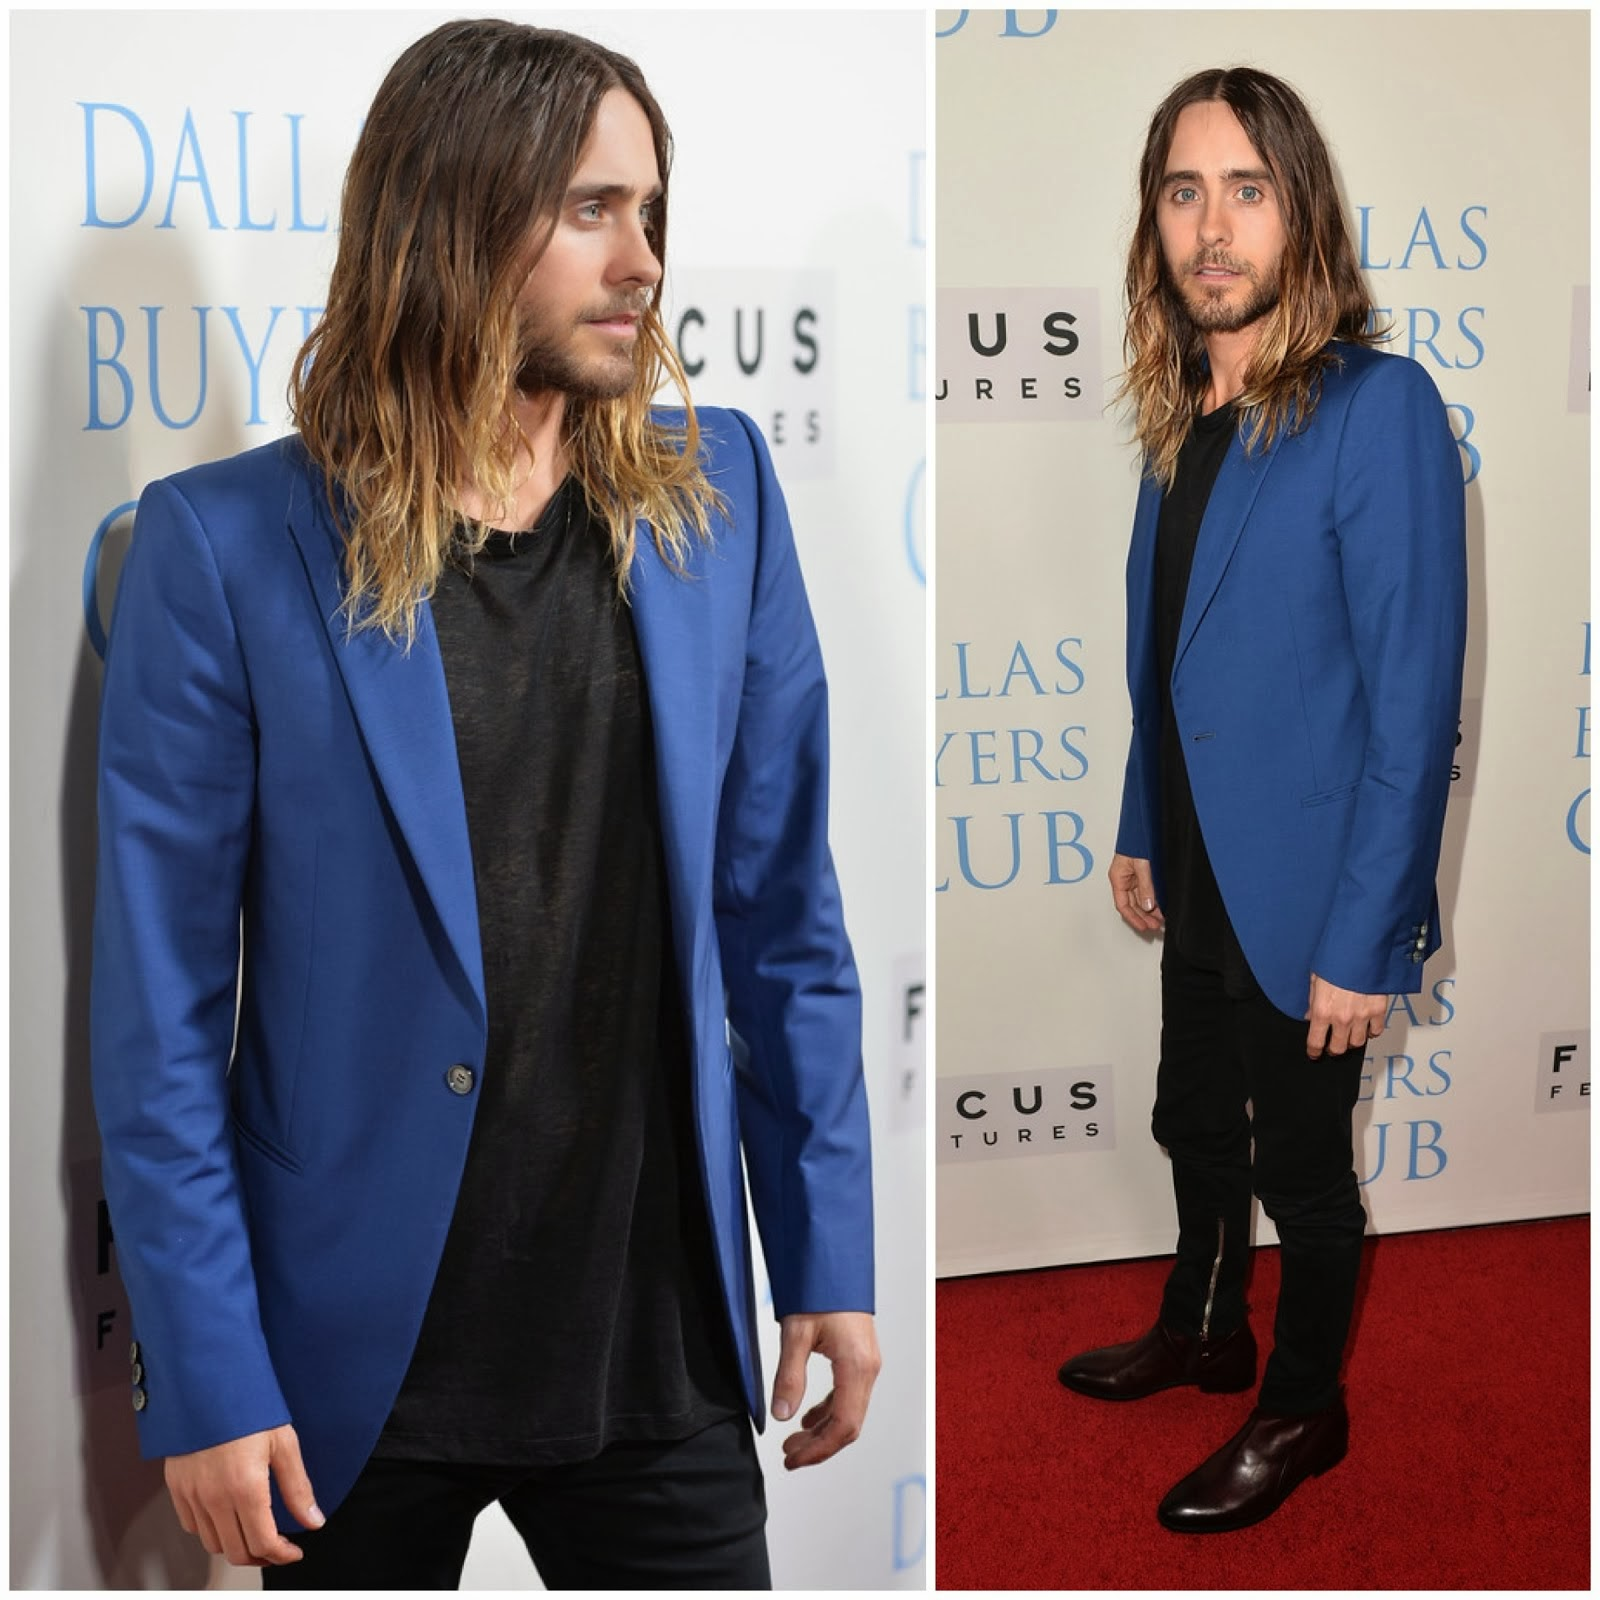 00O00 Menswear Blog: Jared Leto in Alexander McQueen - 'Dallas Buyers Club' premiere, Beverly Hills, California